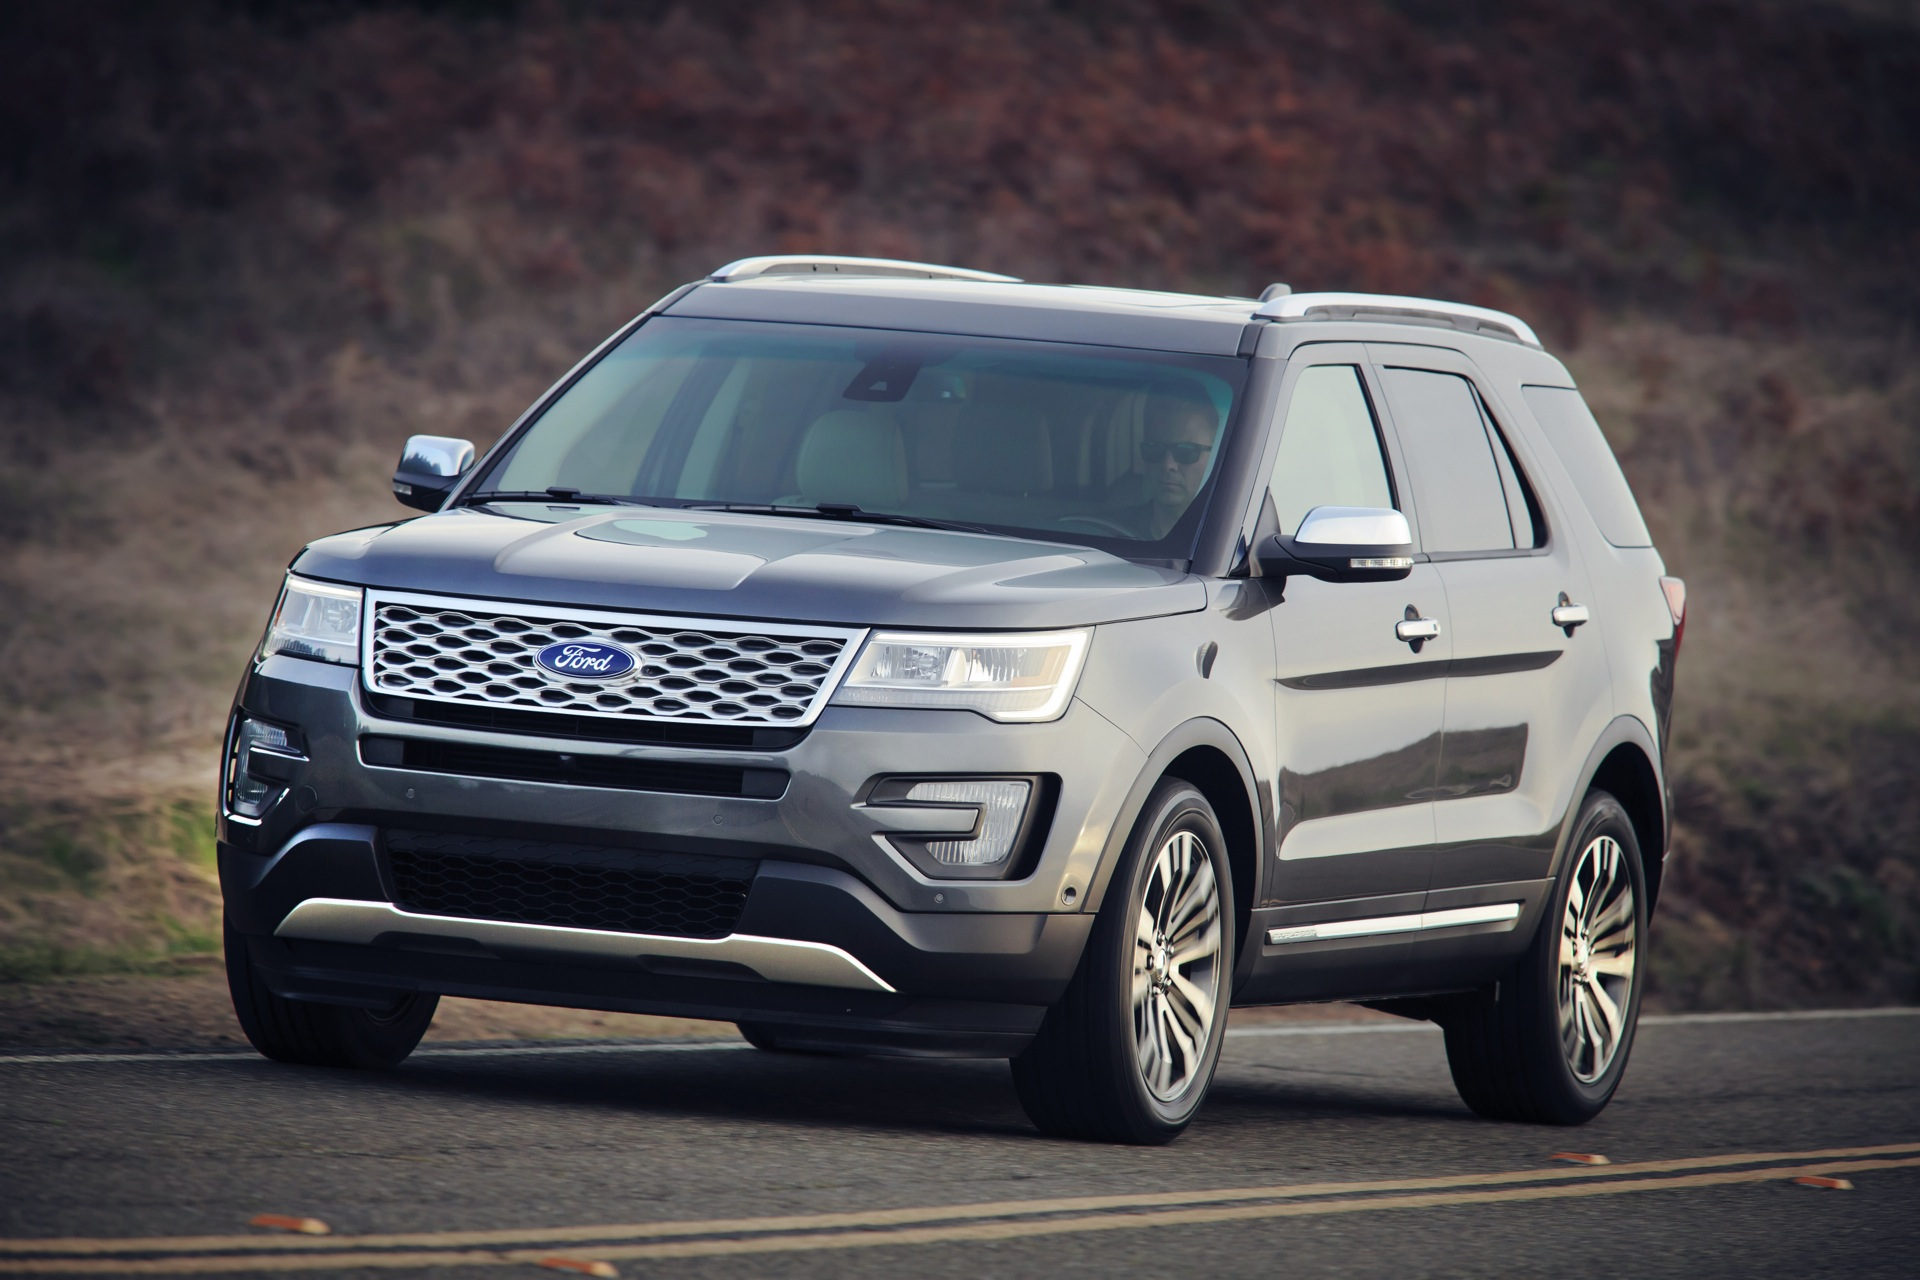 2016 Ford Explorer Mpg >> 2016 Ford Explorer Review Ratings Specs Prices And